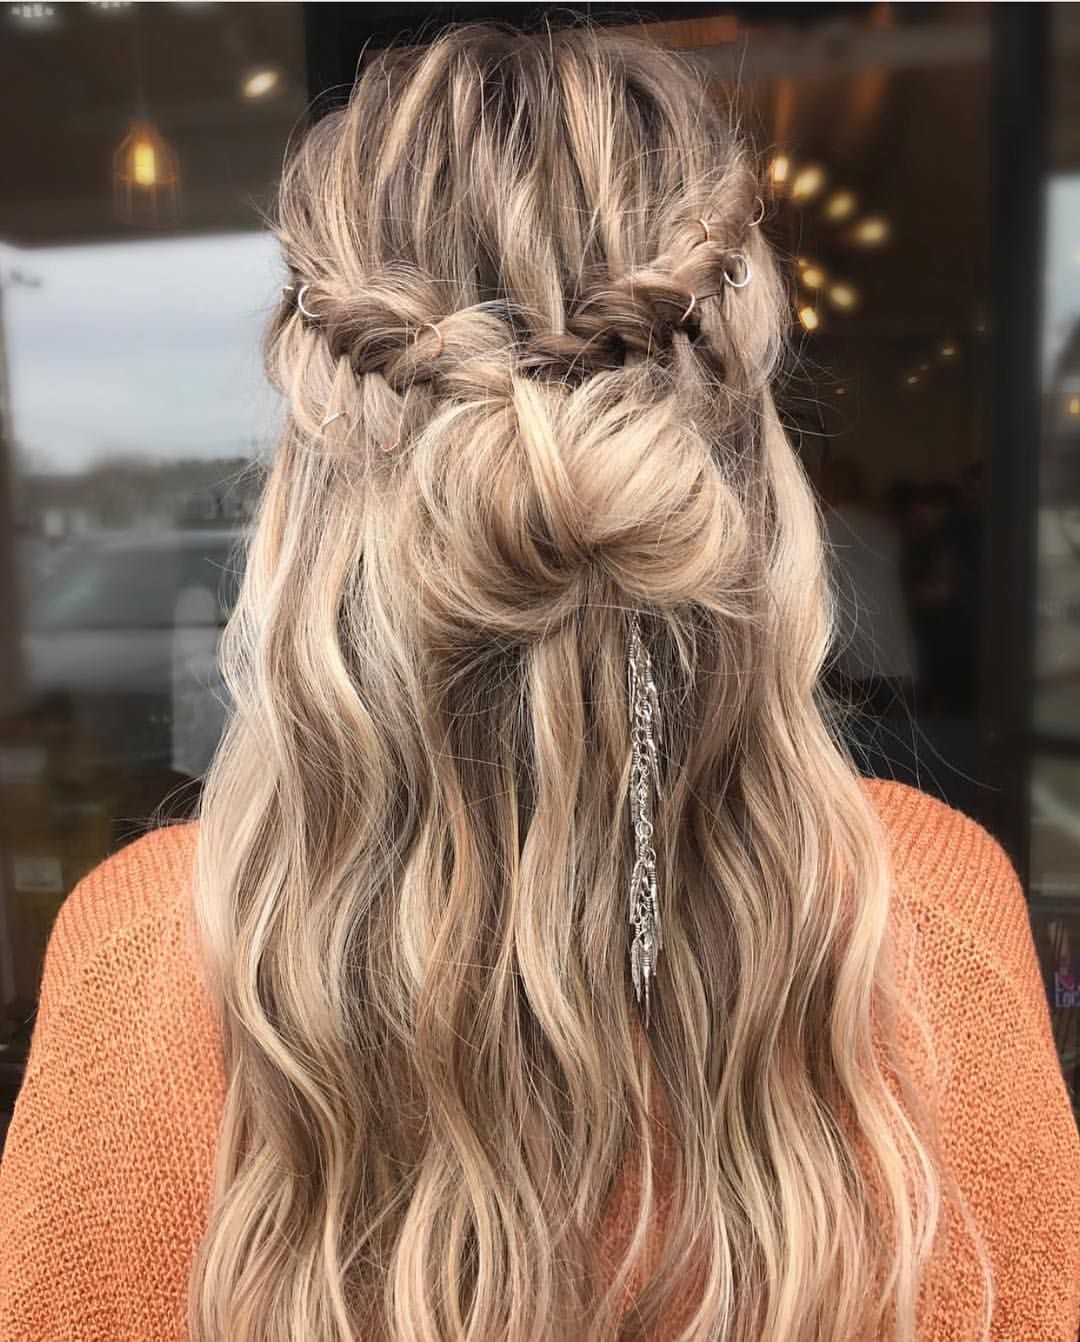 2019 year for girls- Hair?hot Braided trend this summer pictures